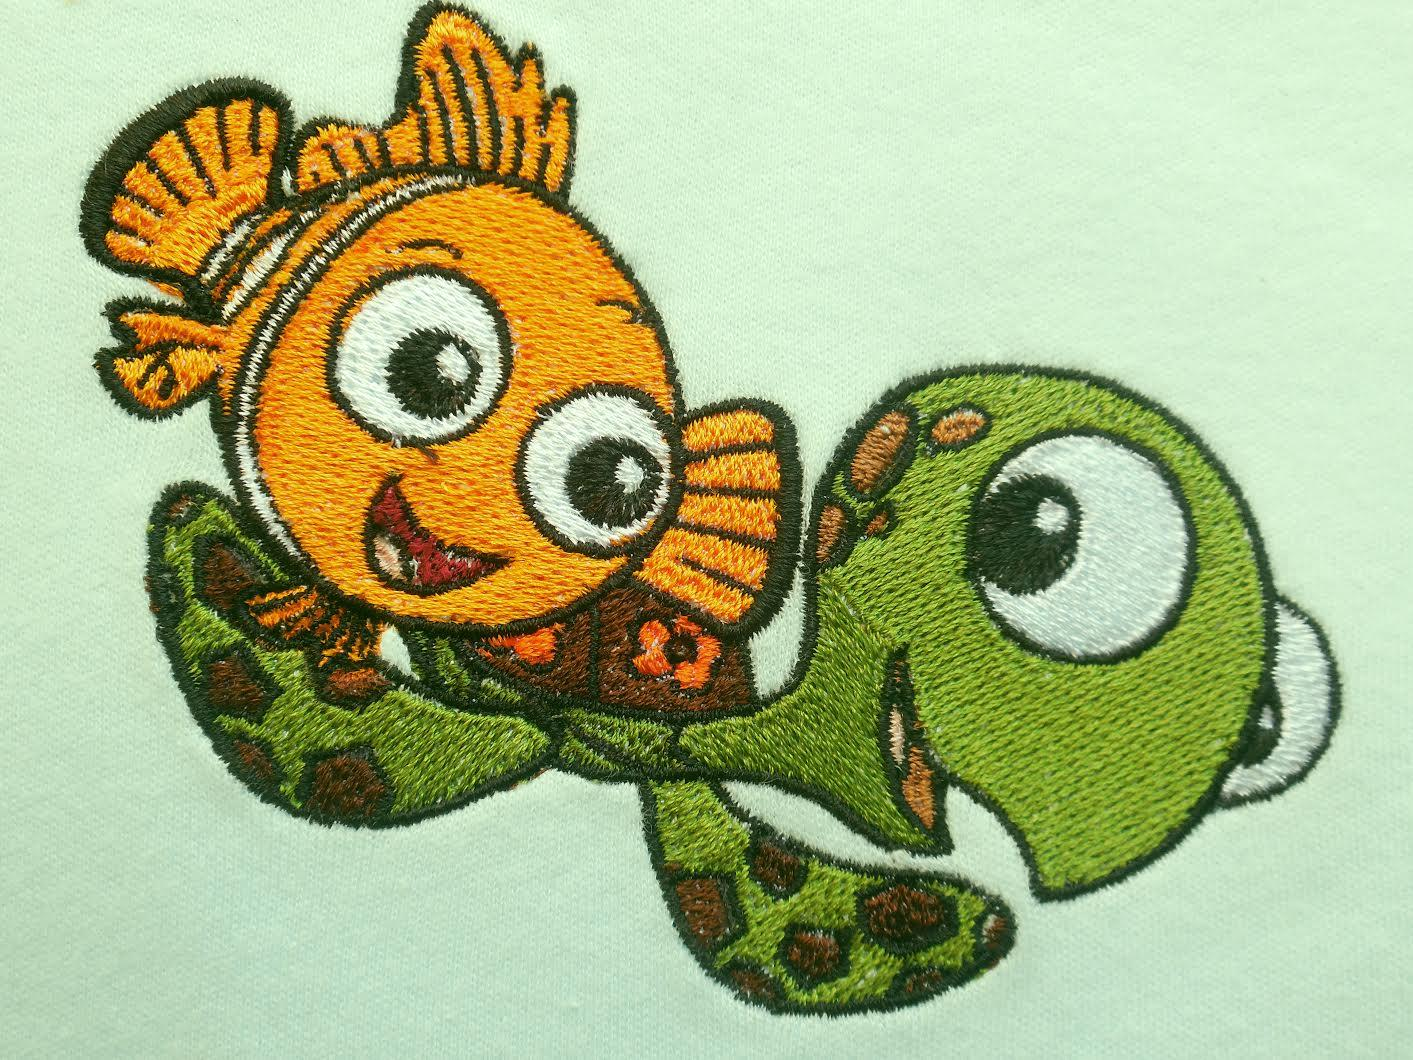 Nemo and Squirt embroidery design